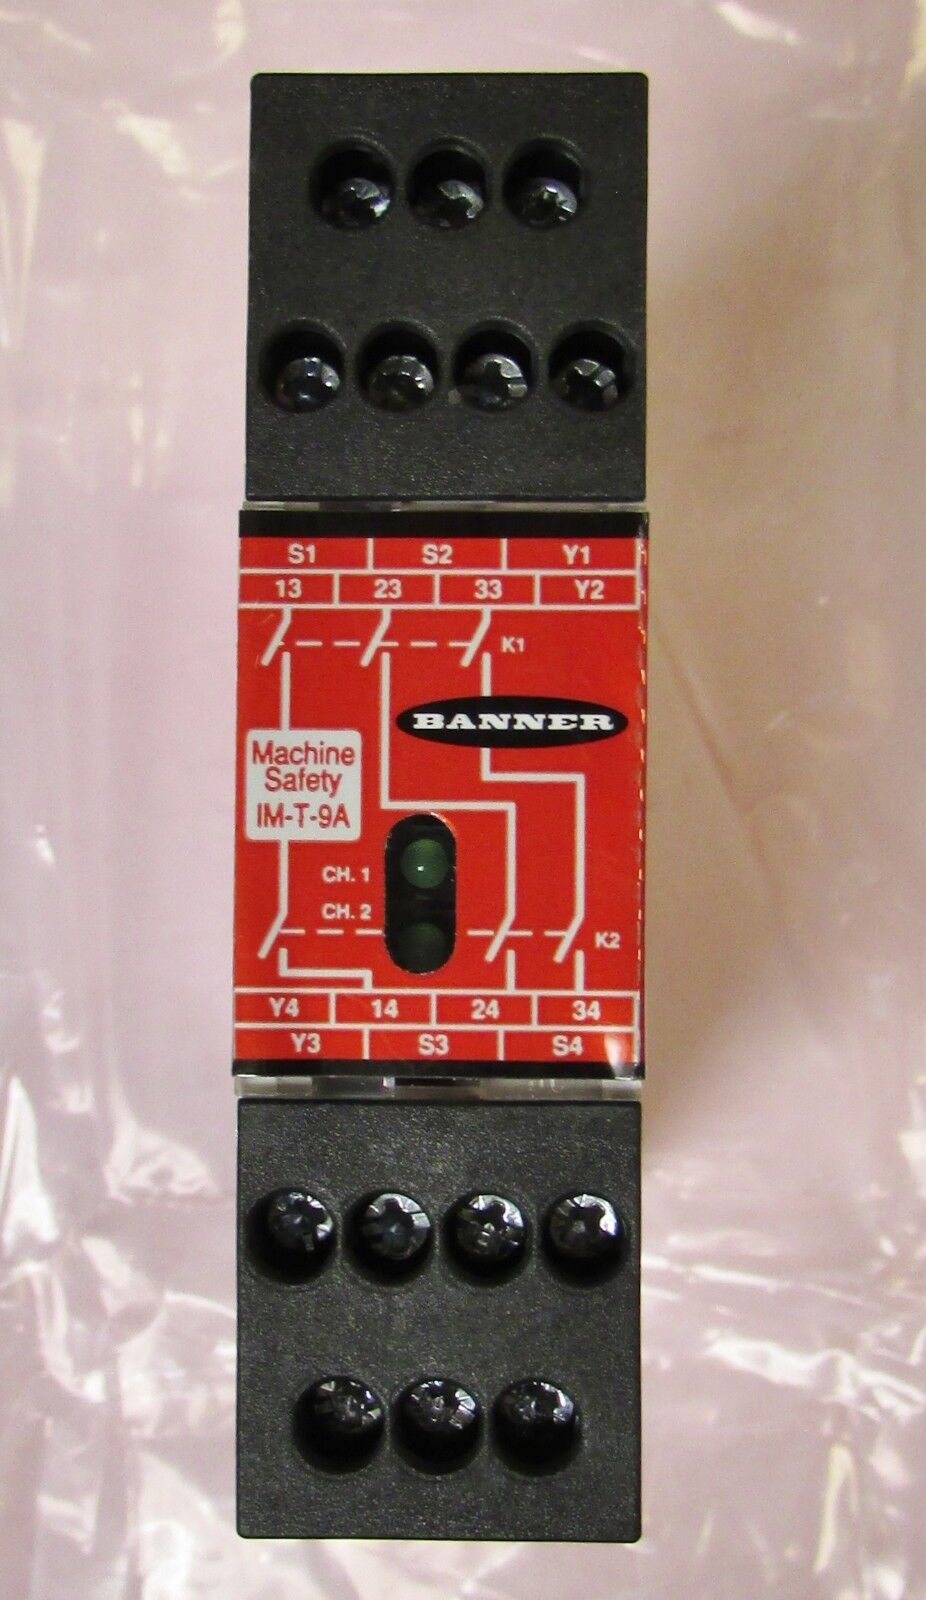 Banner Im-t-9a Safety Relay Module 24 VDC IMT9A on